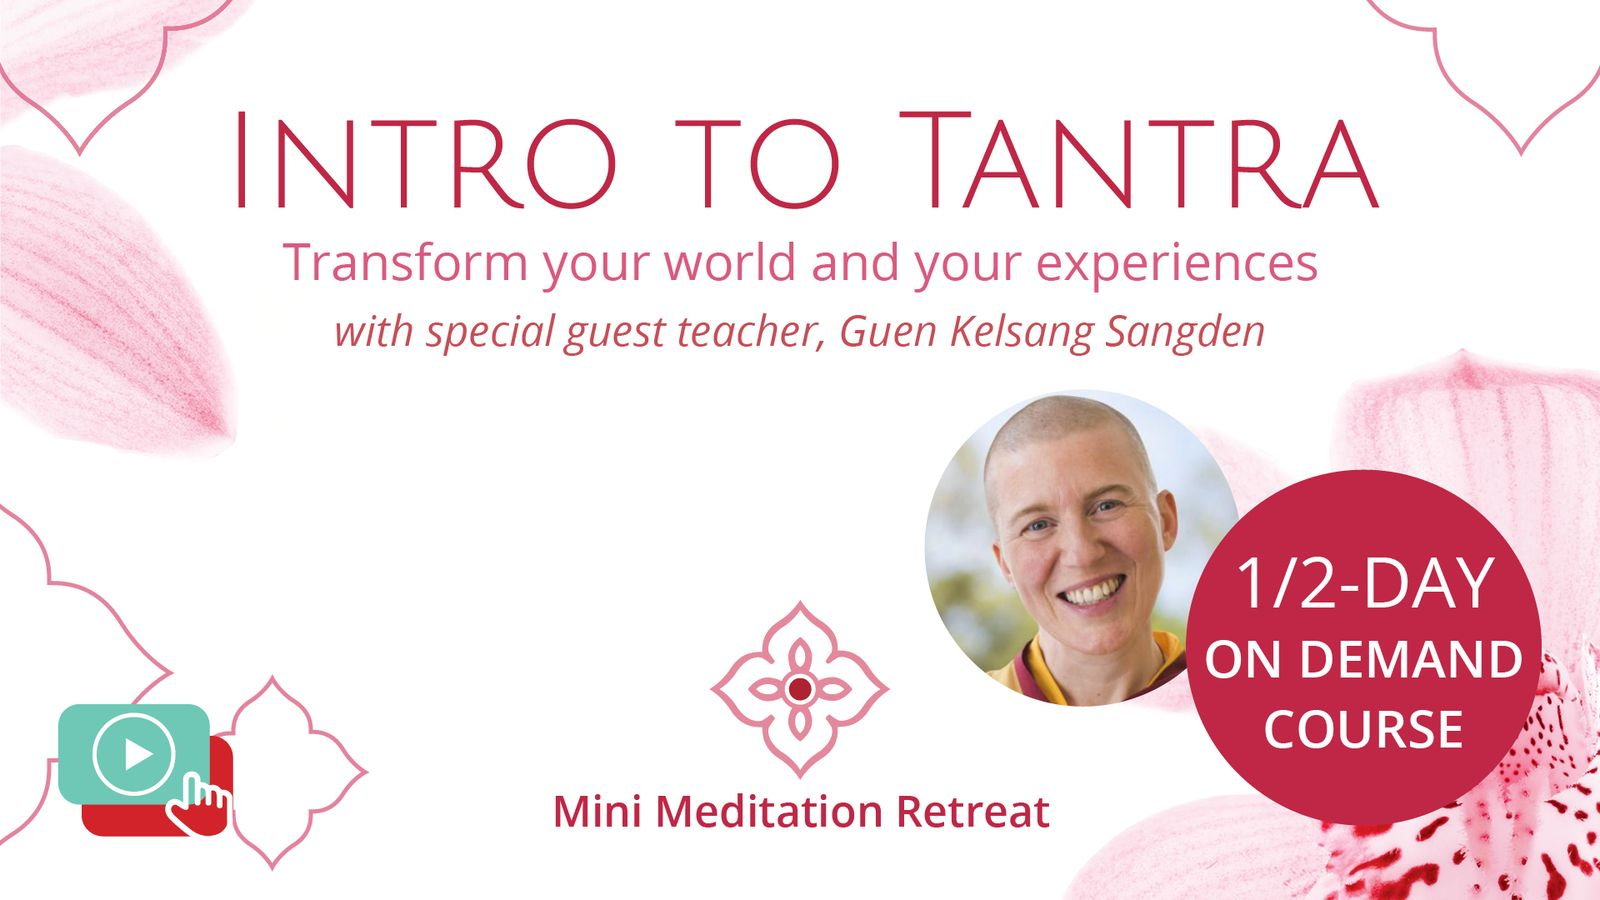 Intro to Tantra On Demand Meditation Course